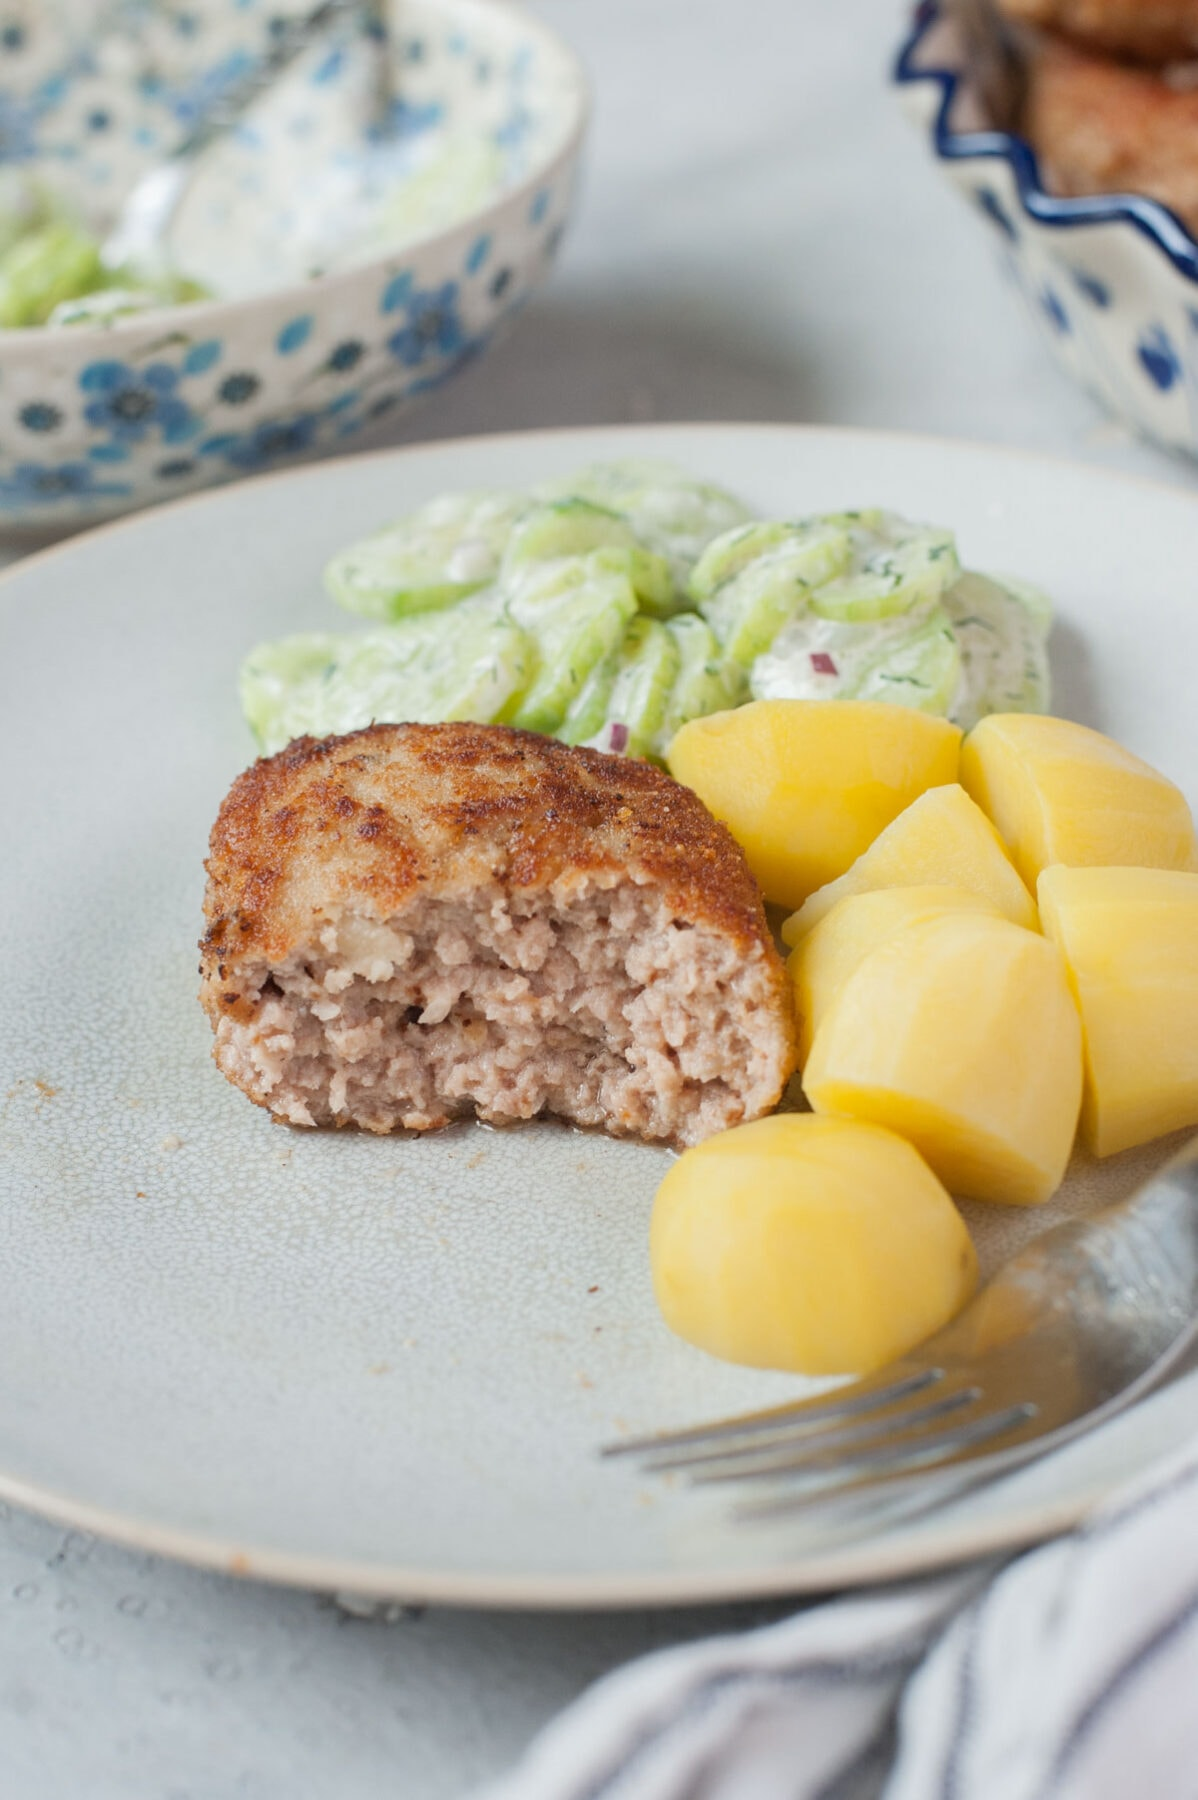 Kotlety mielone (Polish meat patties) on a blue plate with potatoes and cucumber salad.